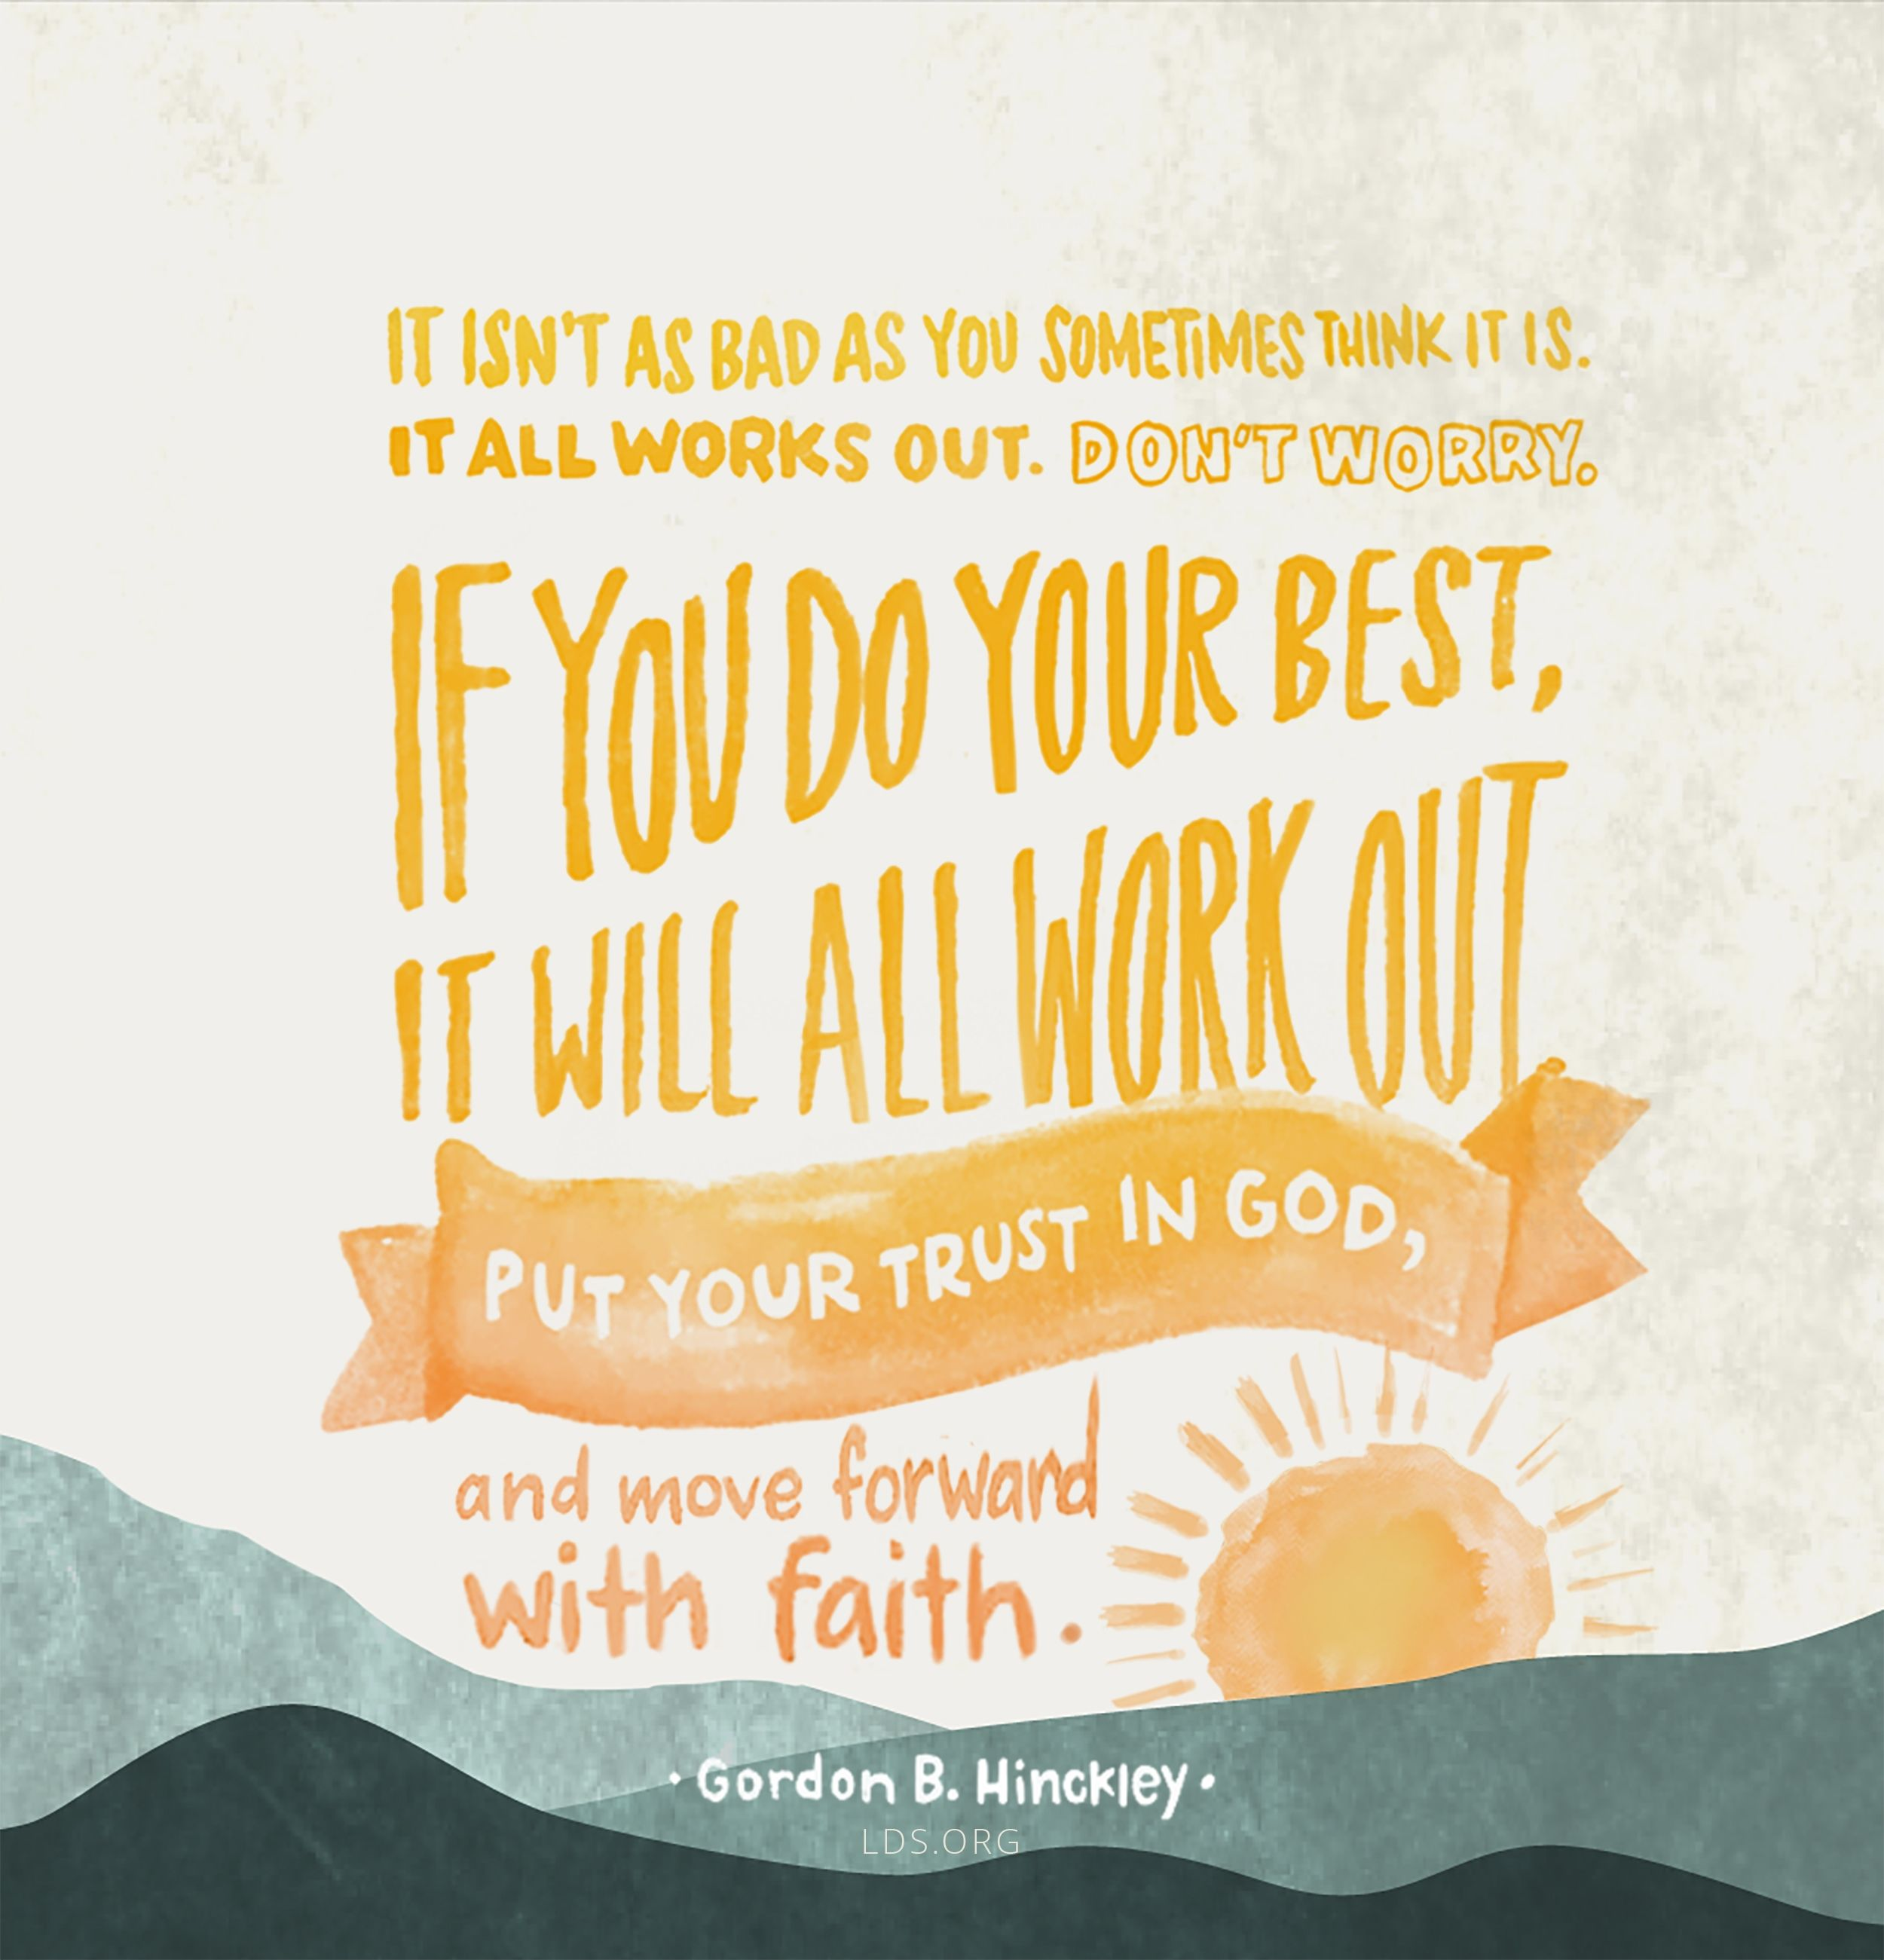 """""""It isn't as bad as you sometimes think it is. It all works out. Don't worry. … If you do your best, it will all work out. Put your trust in God, and move forward with faith.""""—President Gordon B. Hinckley, """"Latter-day Counsel: Excerpts from Addresses of President Gordon B. Hinckley"""""""